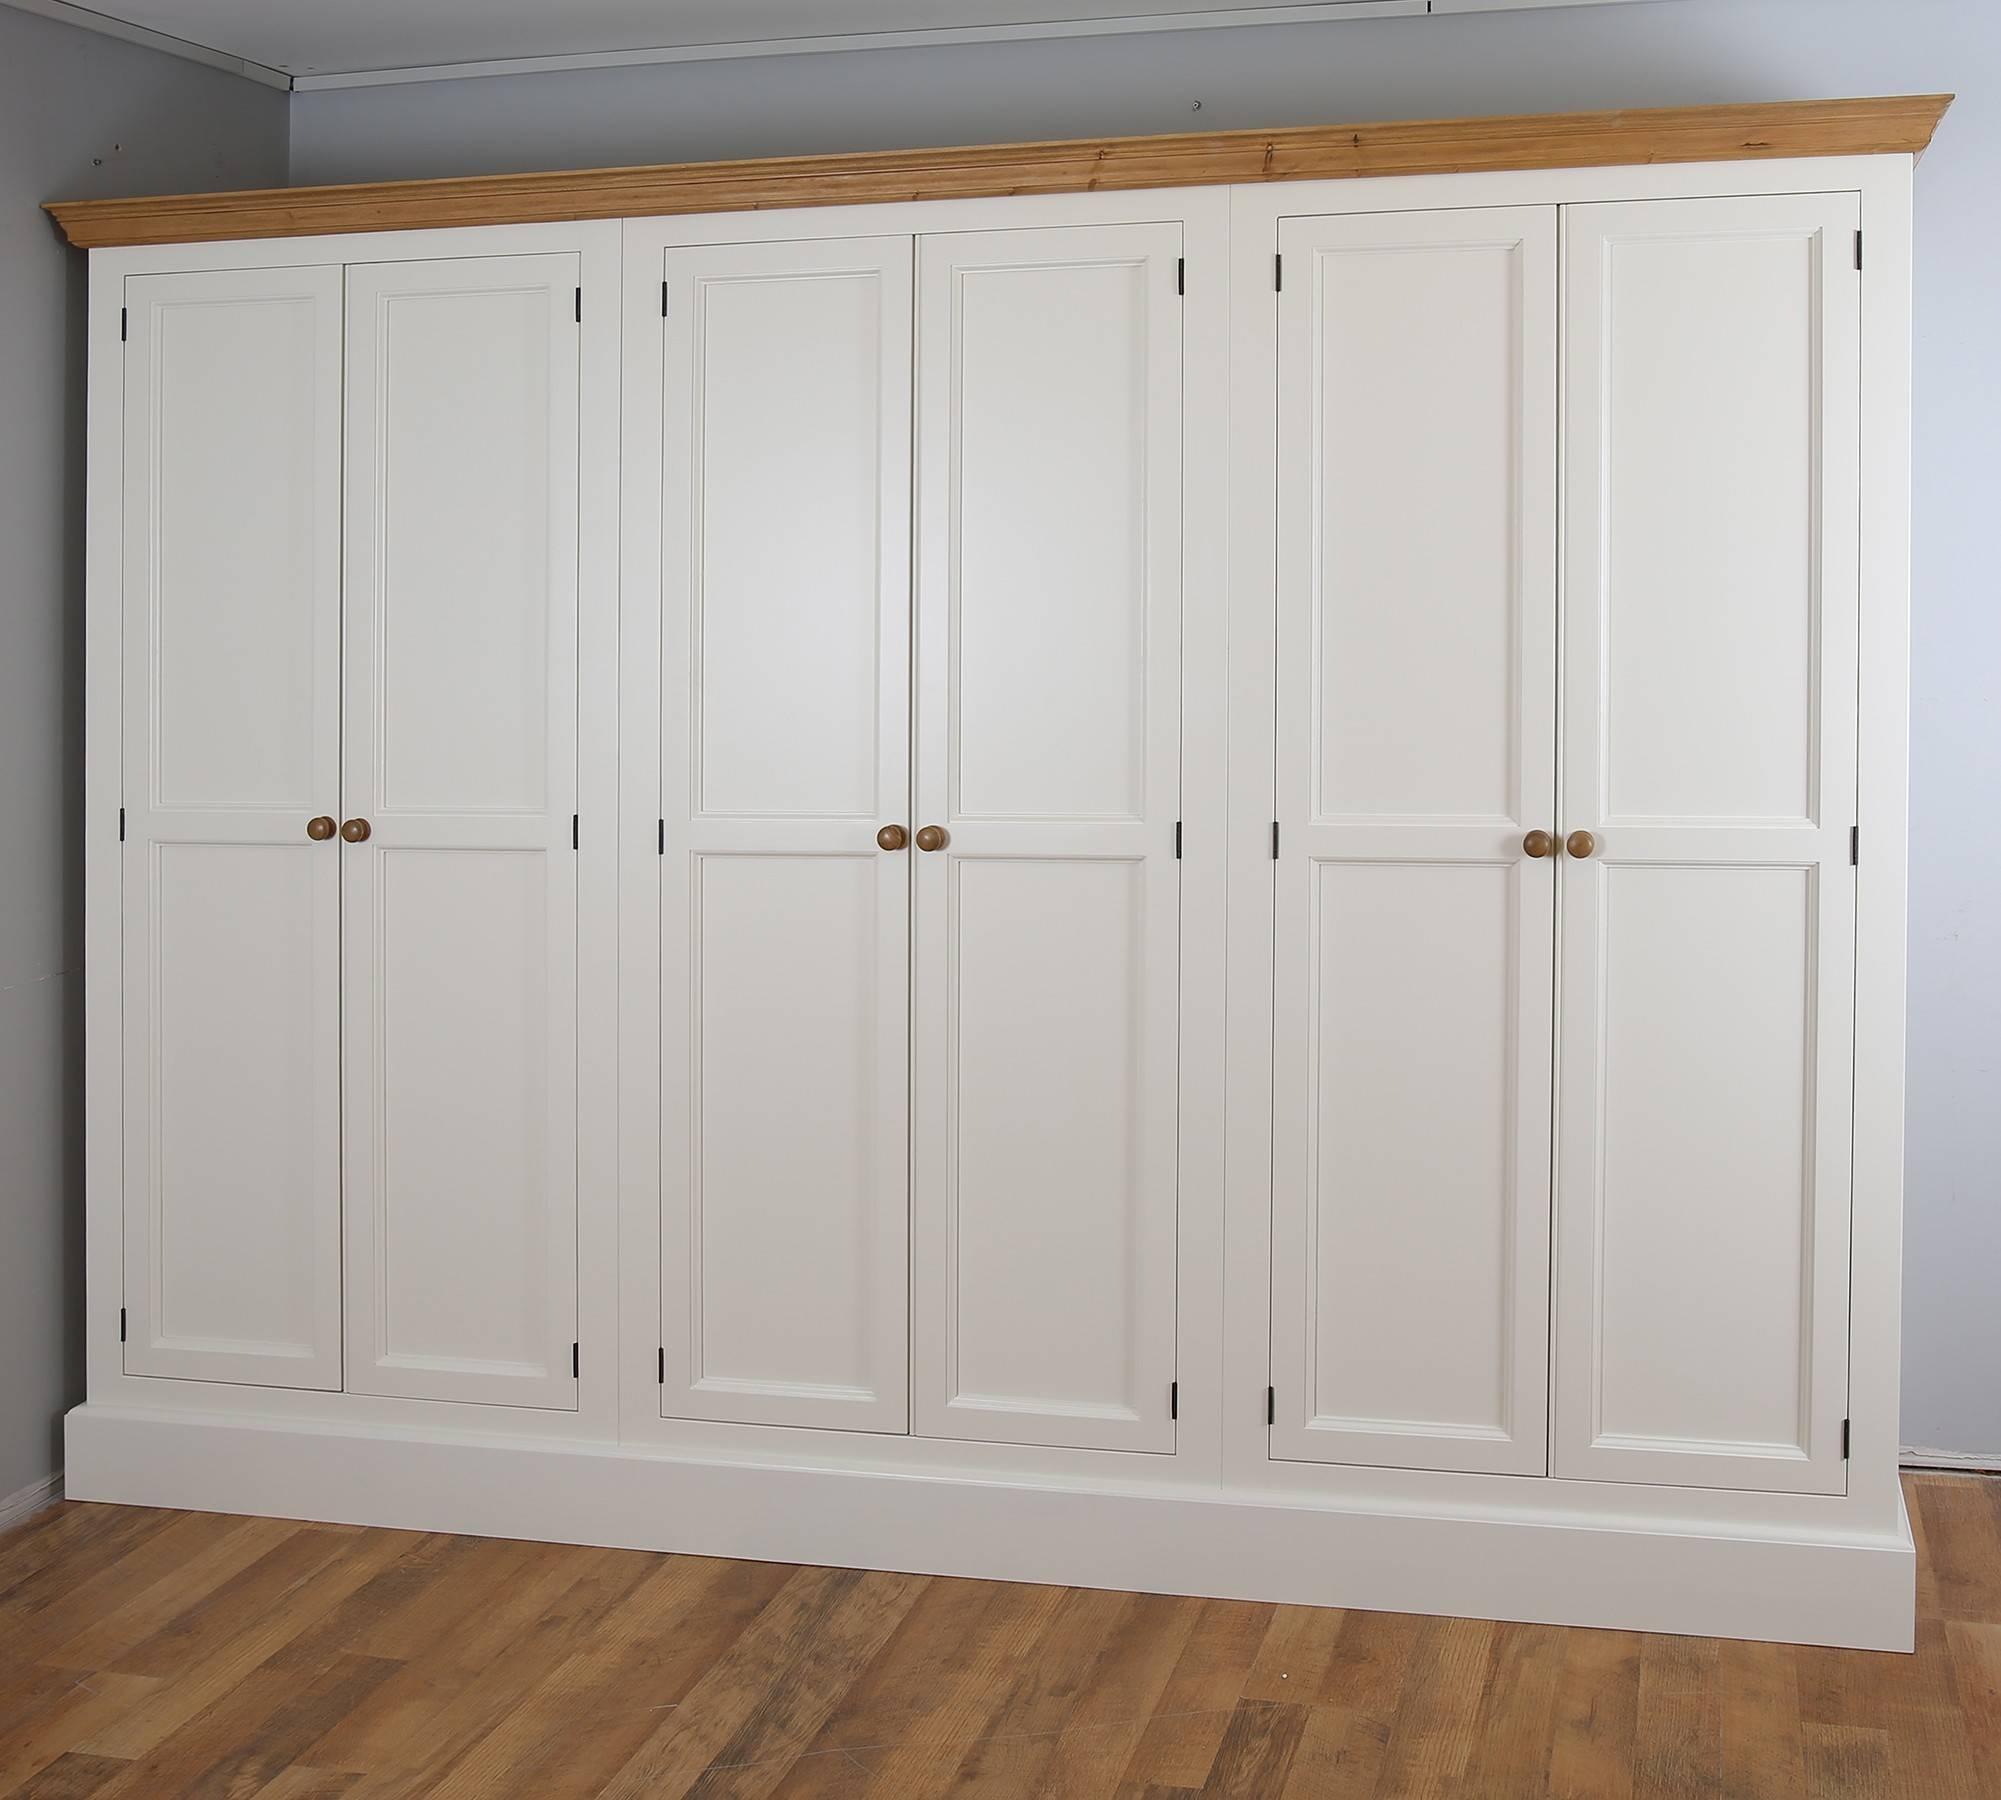 3 Door Wardrobe Designs For Bedroom   Magiel Intended For 6 Doors Wardrobes (Photo 12 of 15)